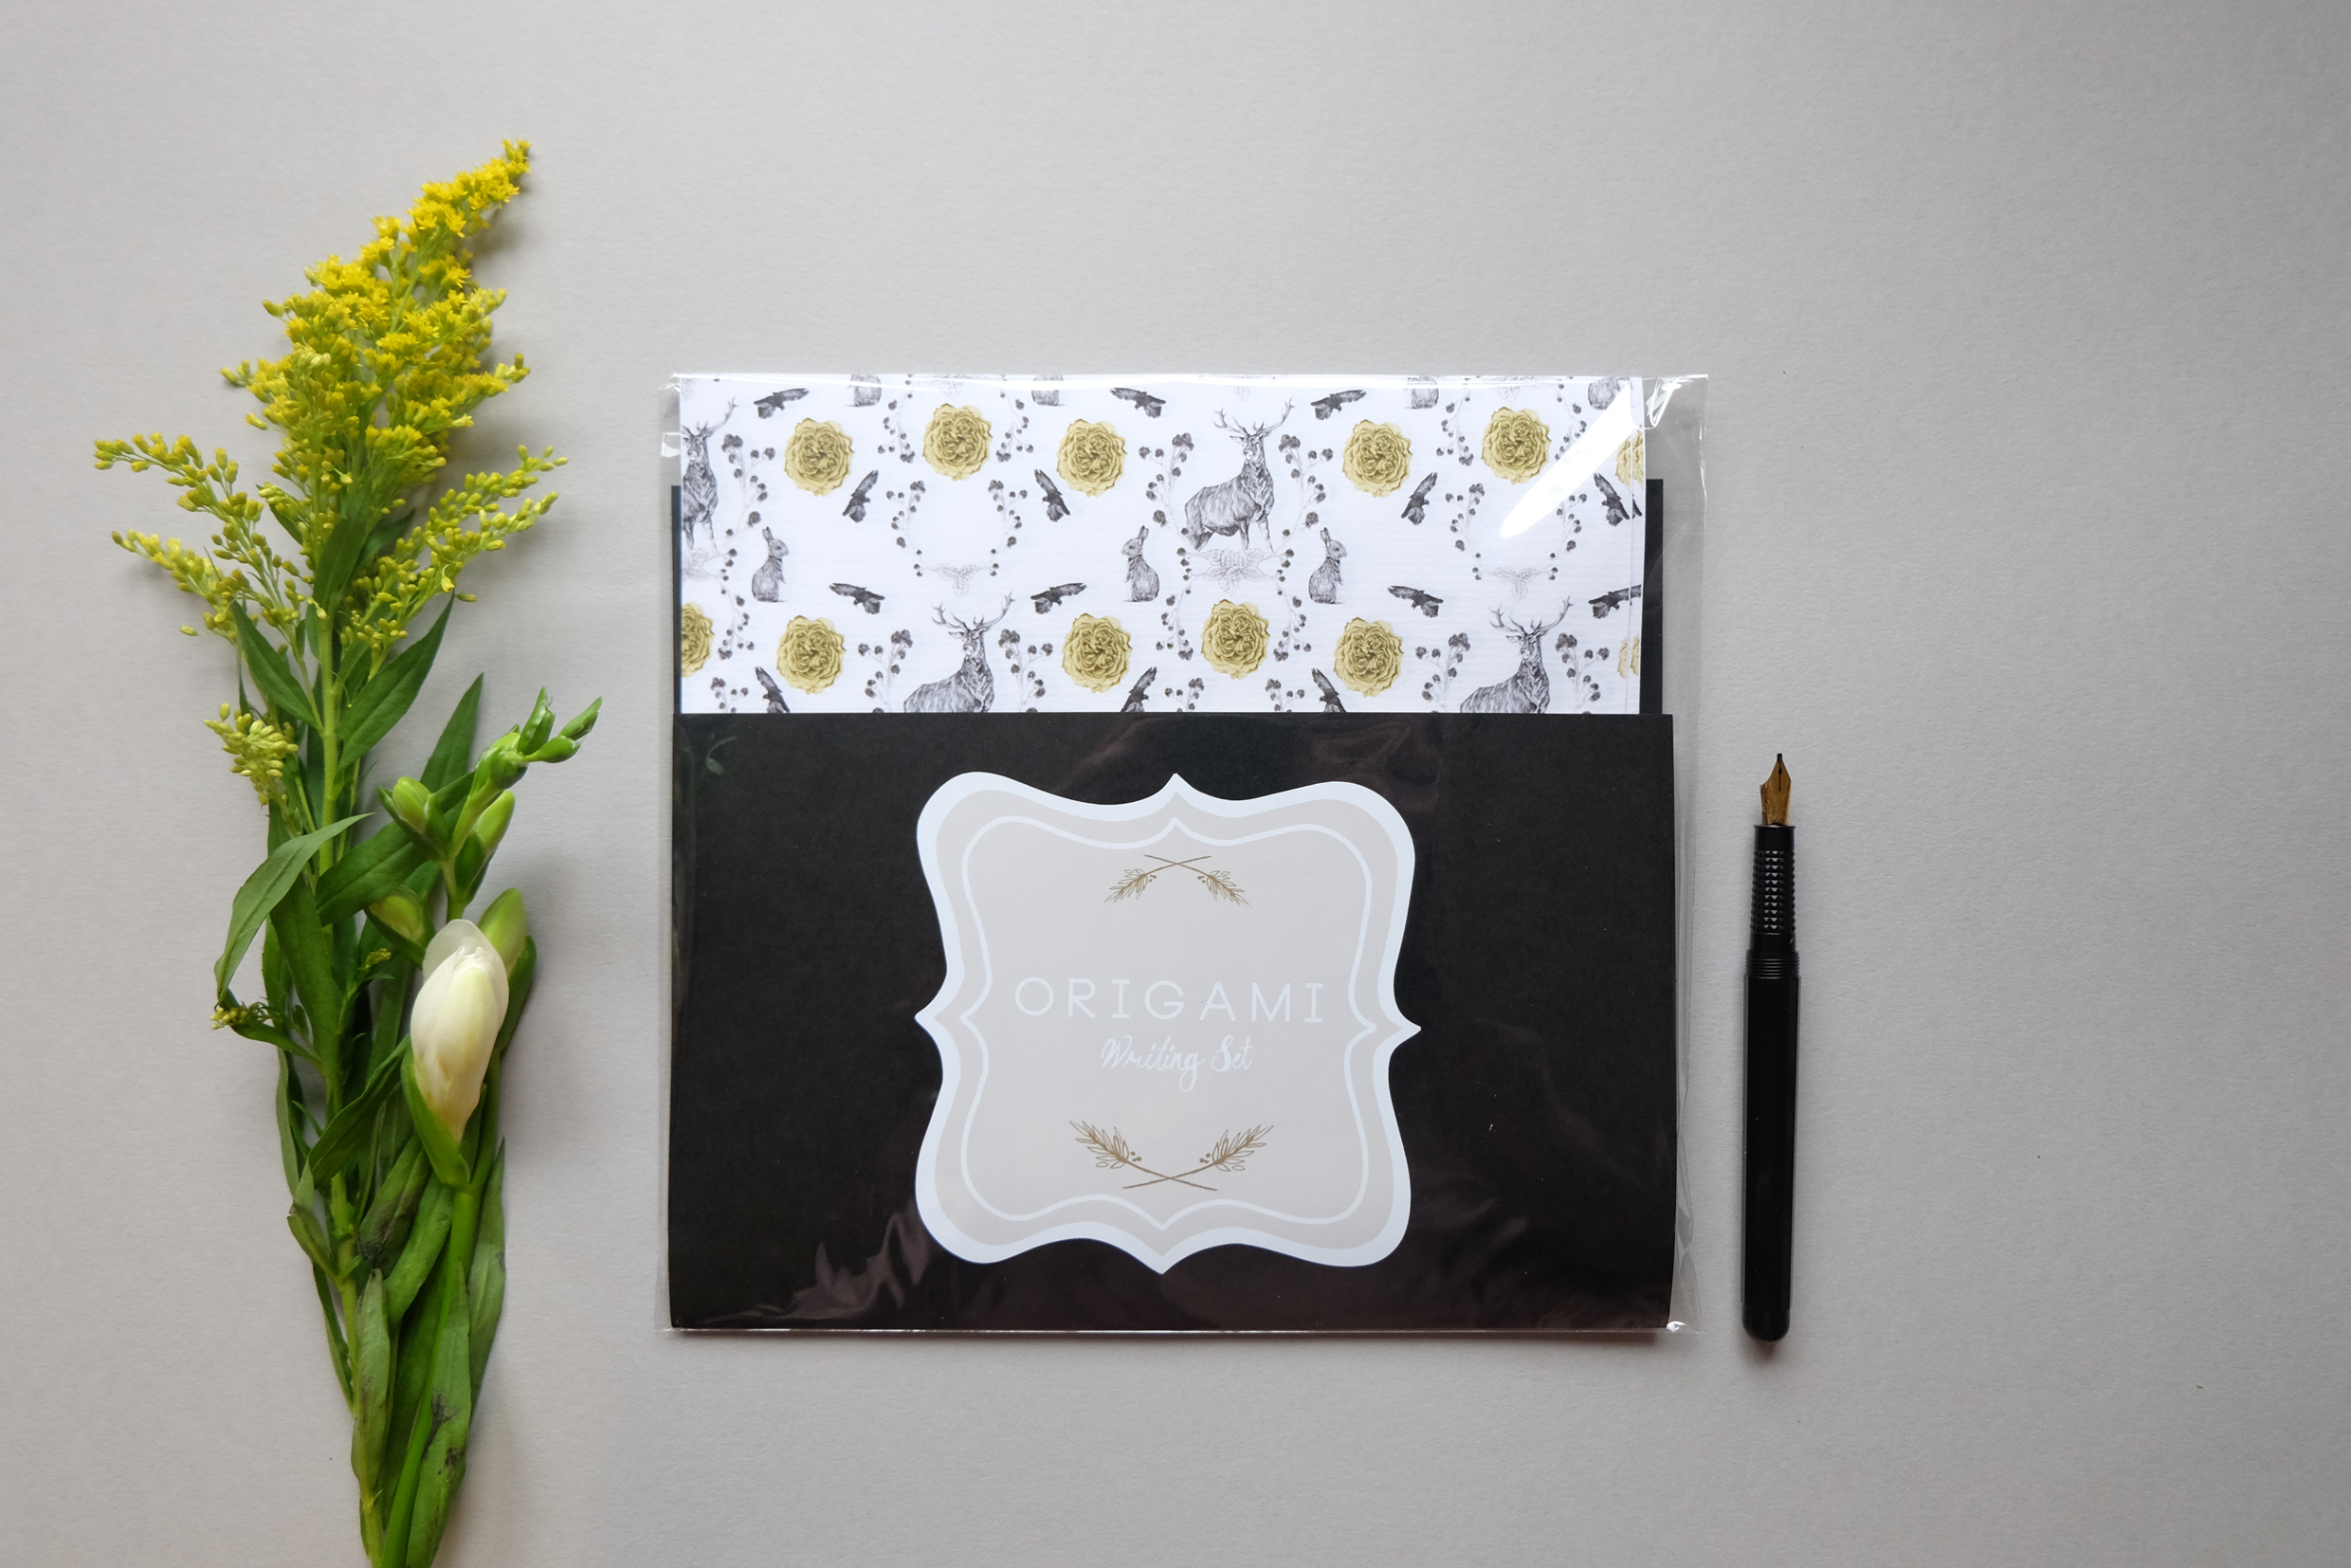 Flora and Fauna writing set £11.40